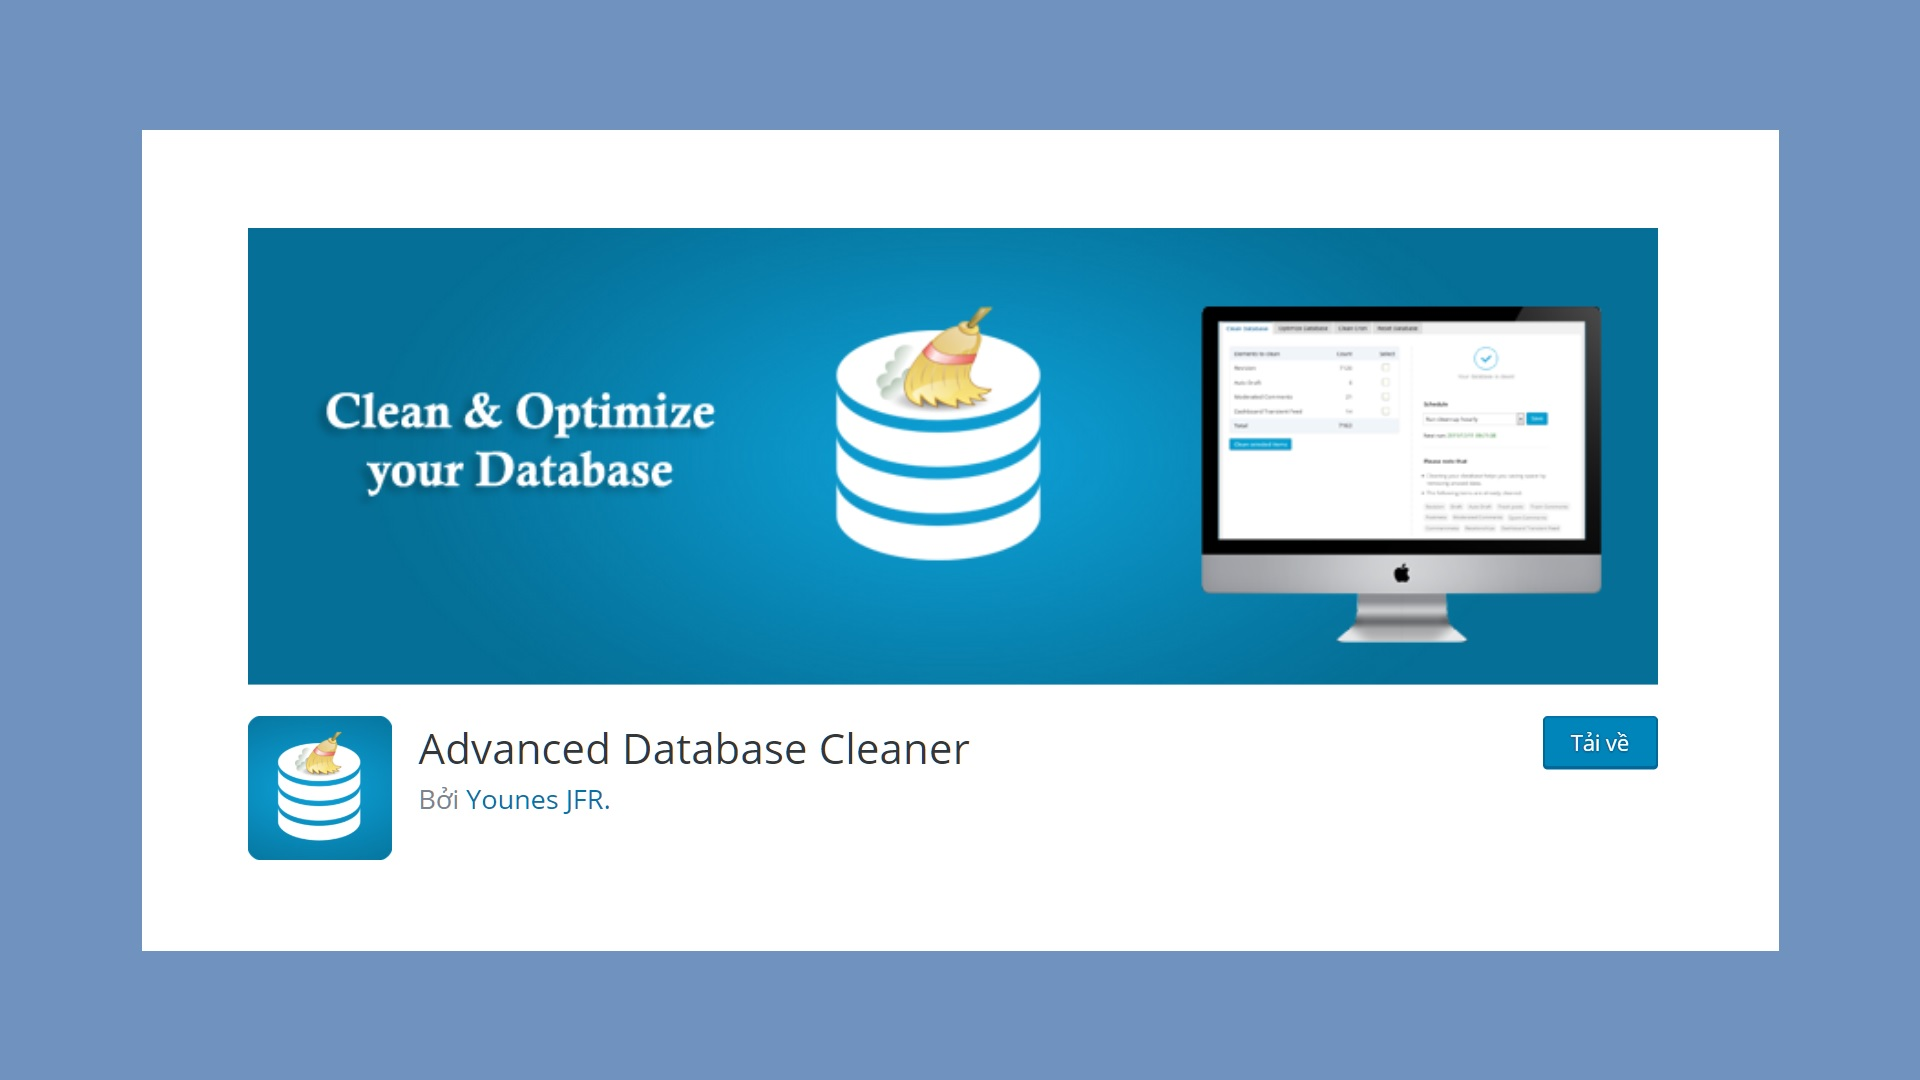 su dung plugin Advanced Database Cleaner de xoa themes tables